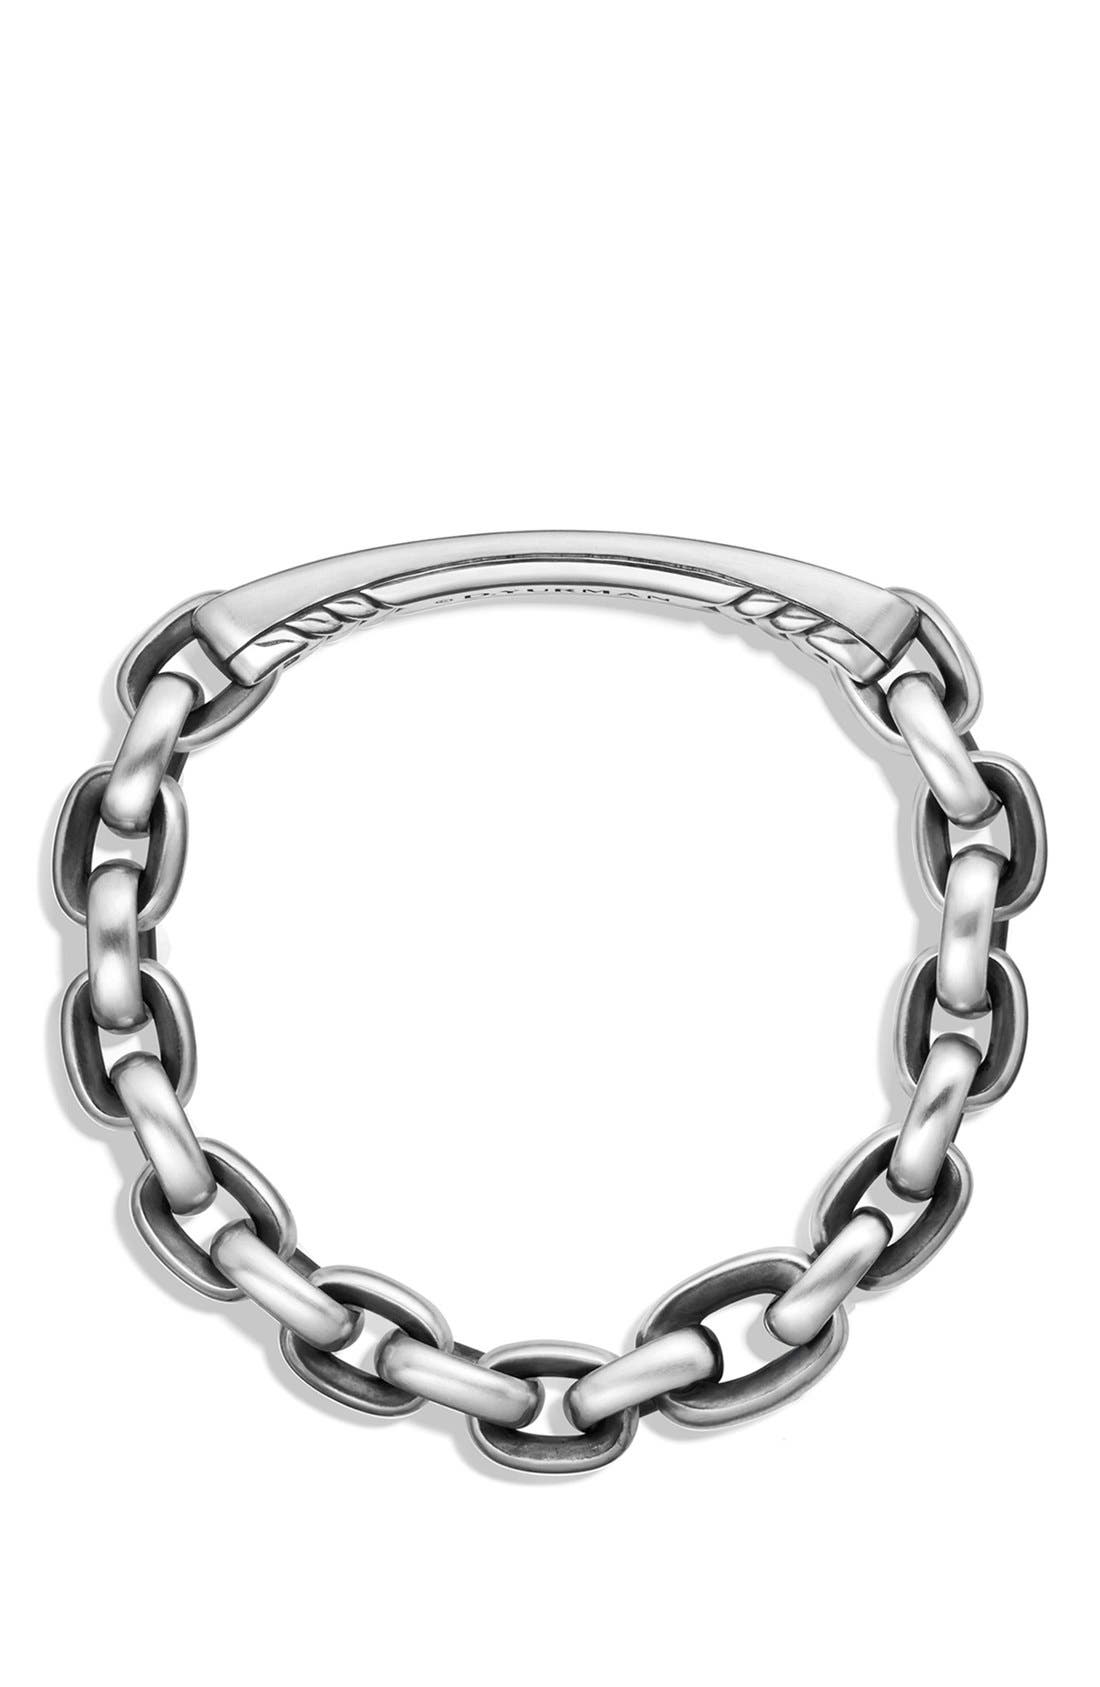 'Streamline' ID Bracelet,                             Alternate thumbnail 3, color,                             SILVER